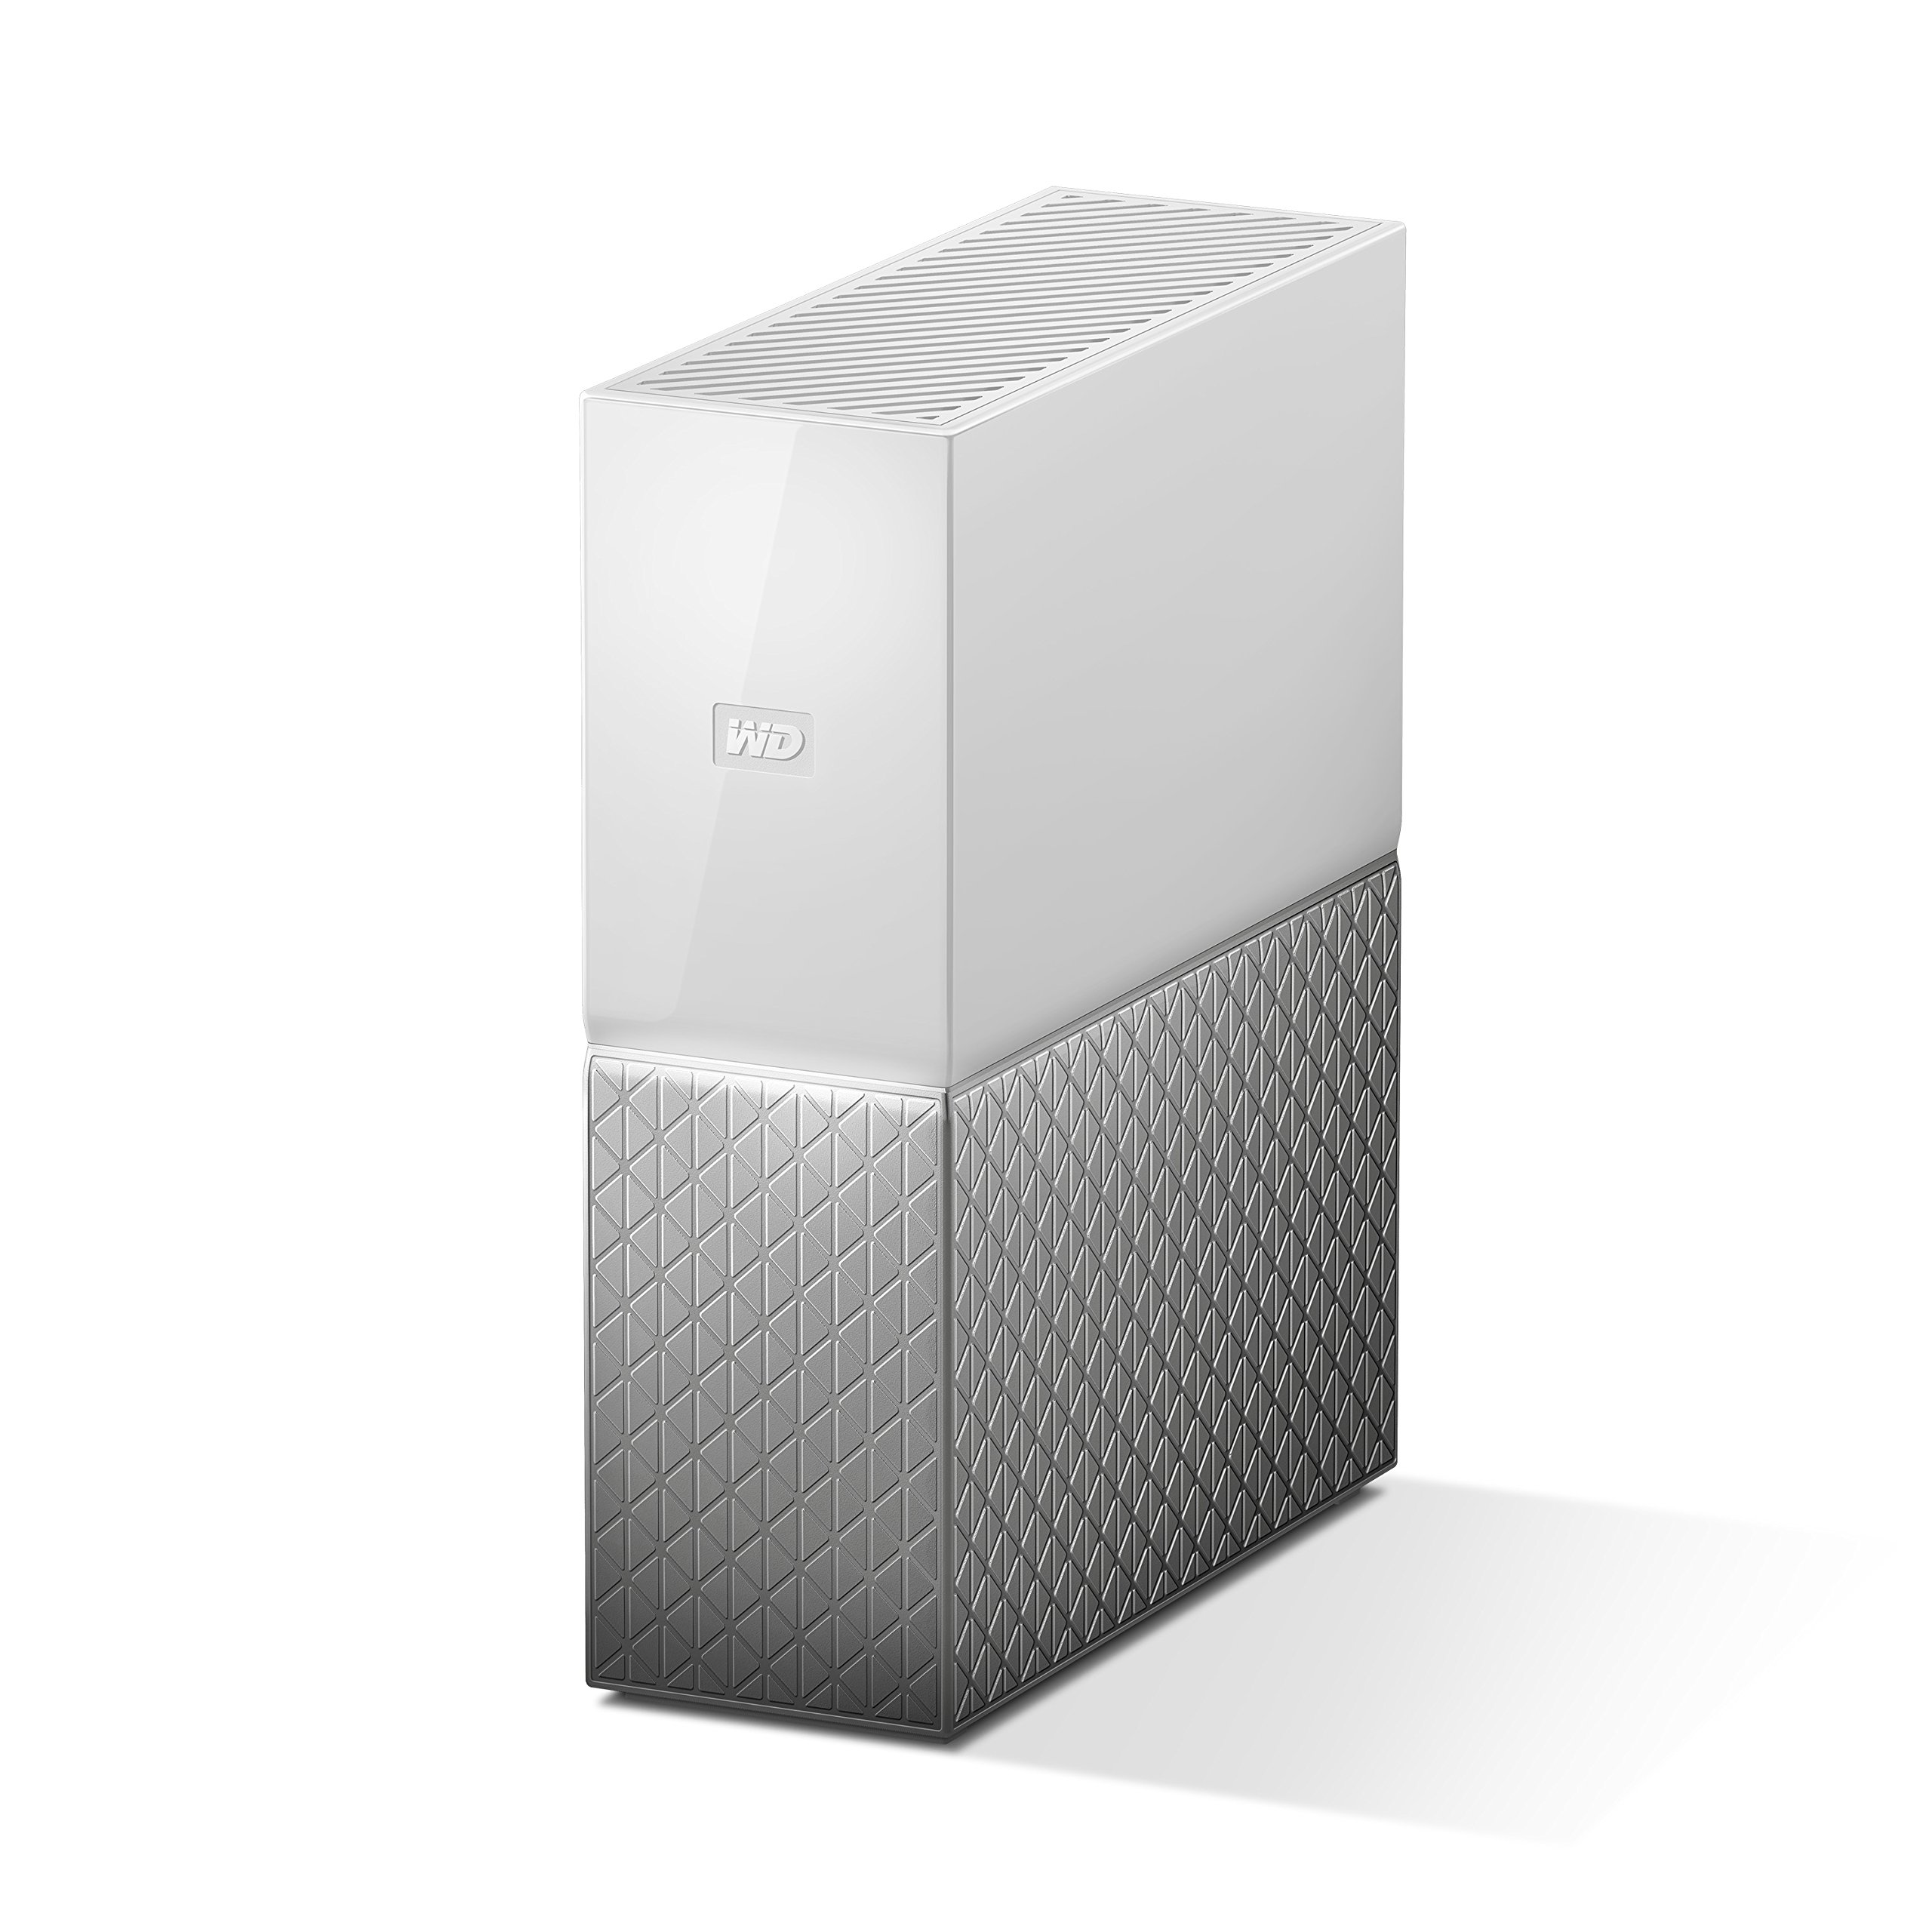 WD 8TB My Cloud Home Personal Cloud Storage - WDBVXC0080HWT-NESN by Western Digital (Image #5)